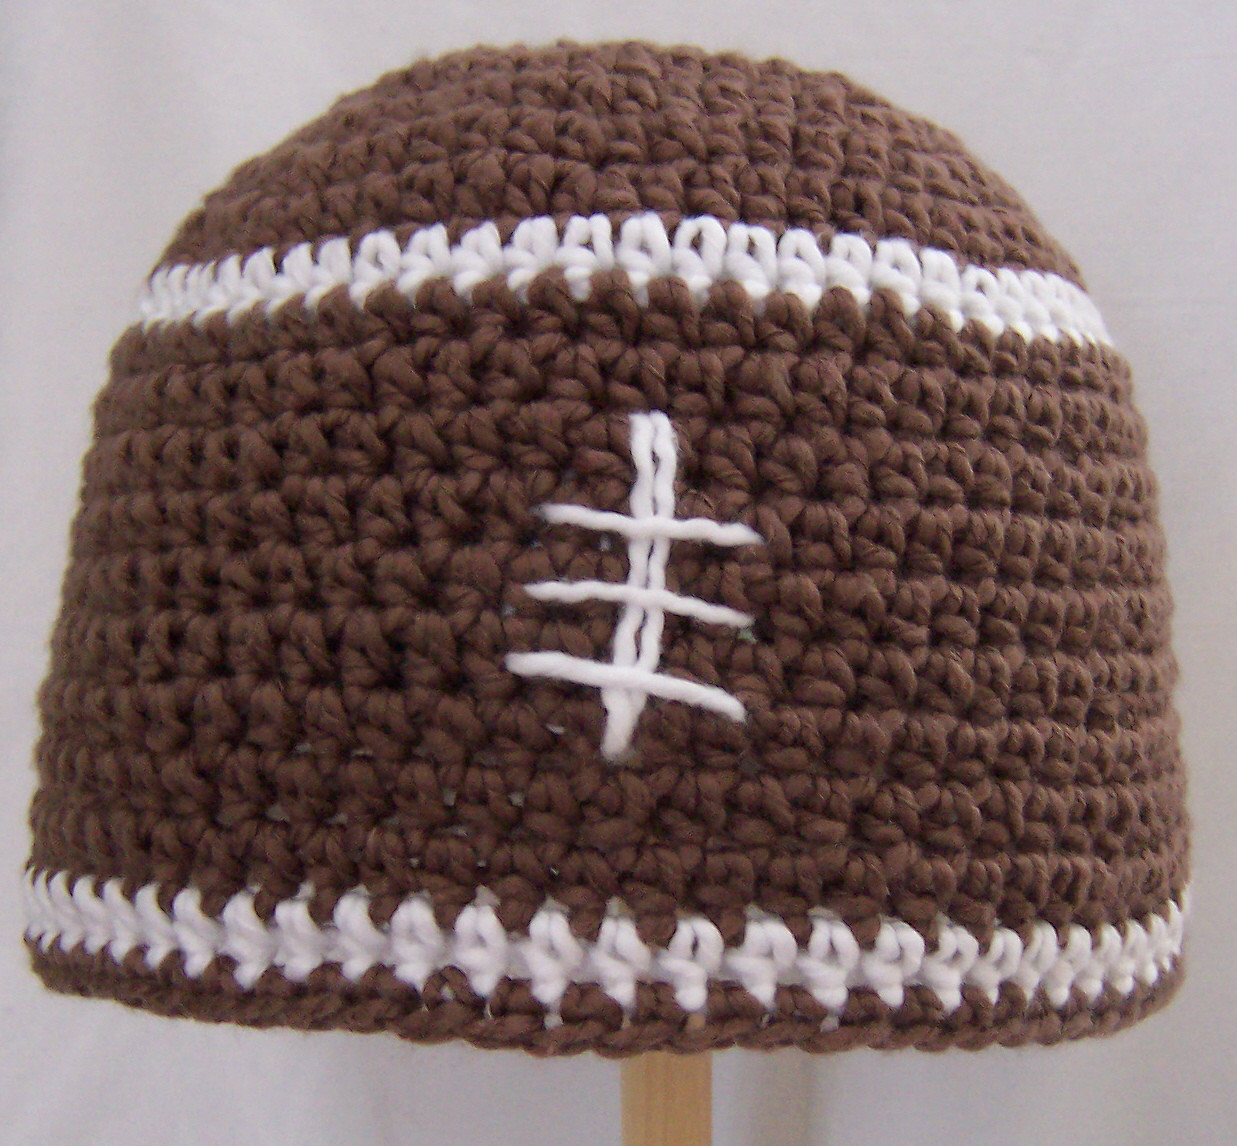 Lovely Free Crochet Patterns Free Crochet Pattern Football Free Crochet Beanie Hat Pattern Of Amazing 48 Images Free Crochet Beanie Hat Pattern